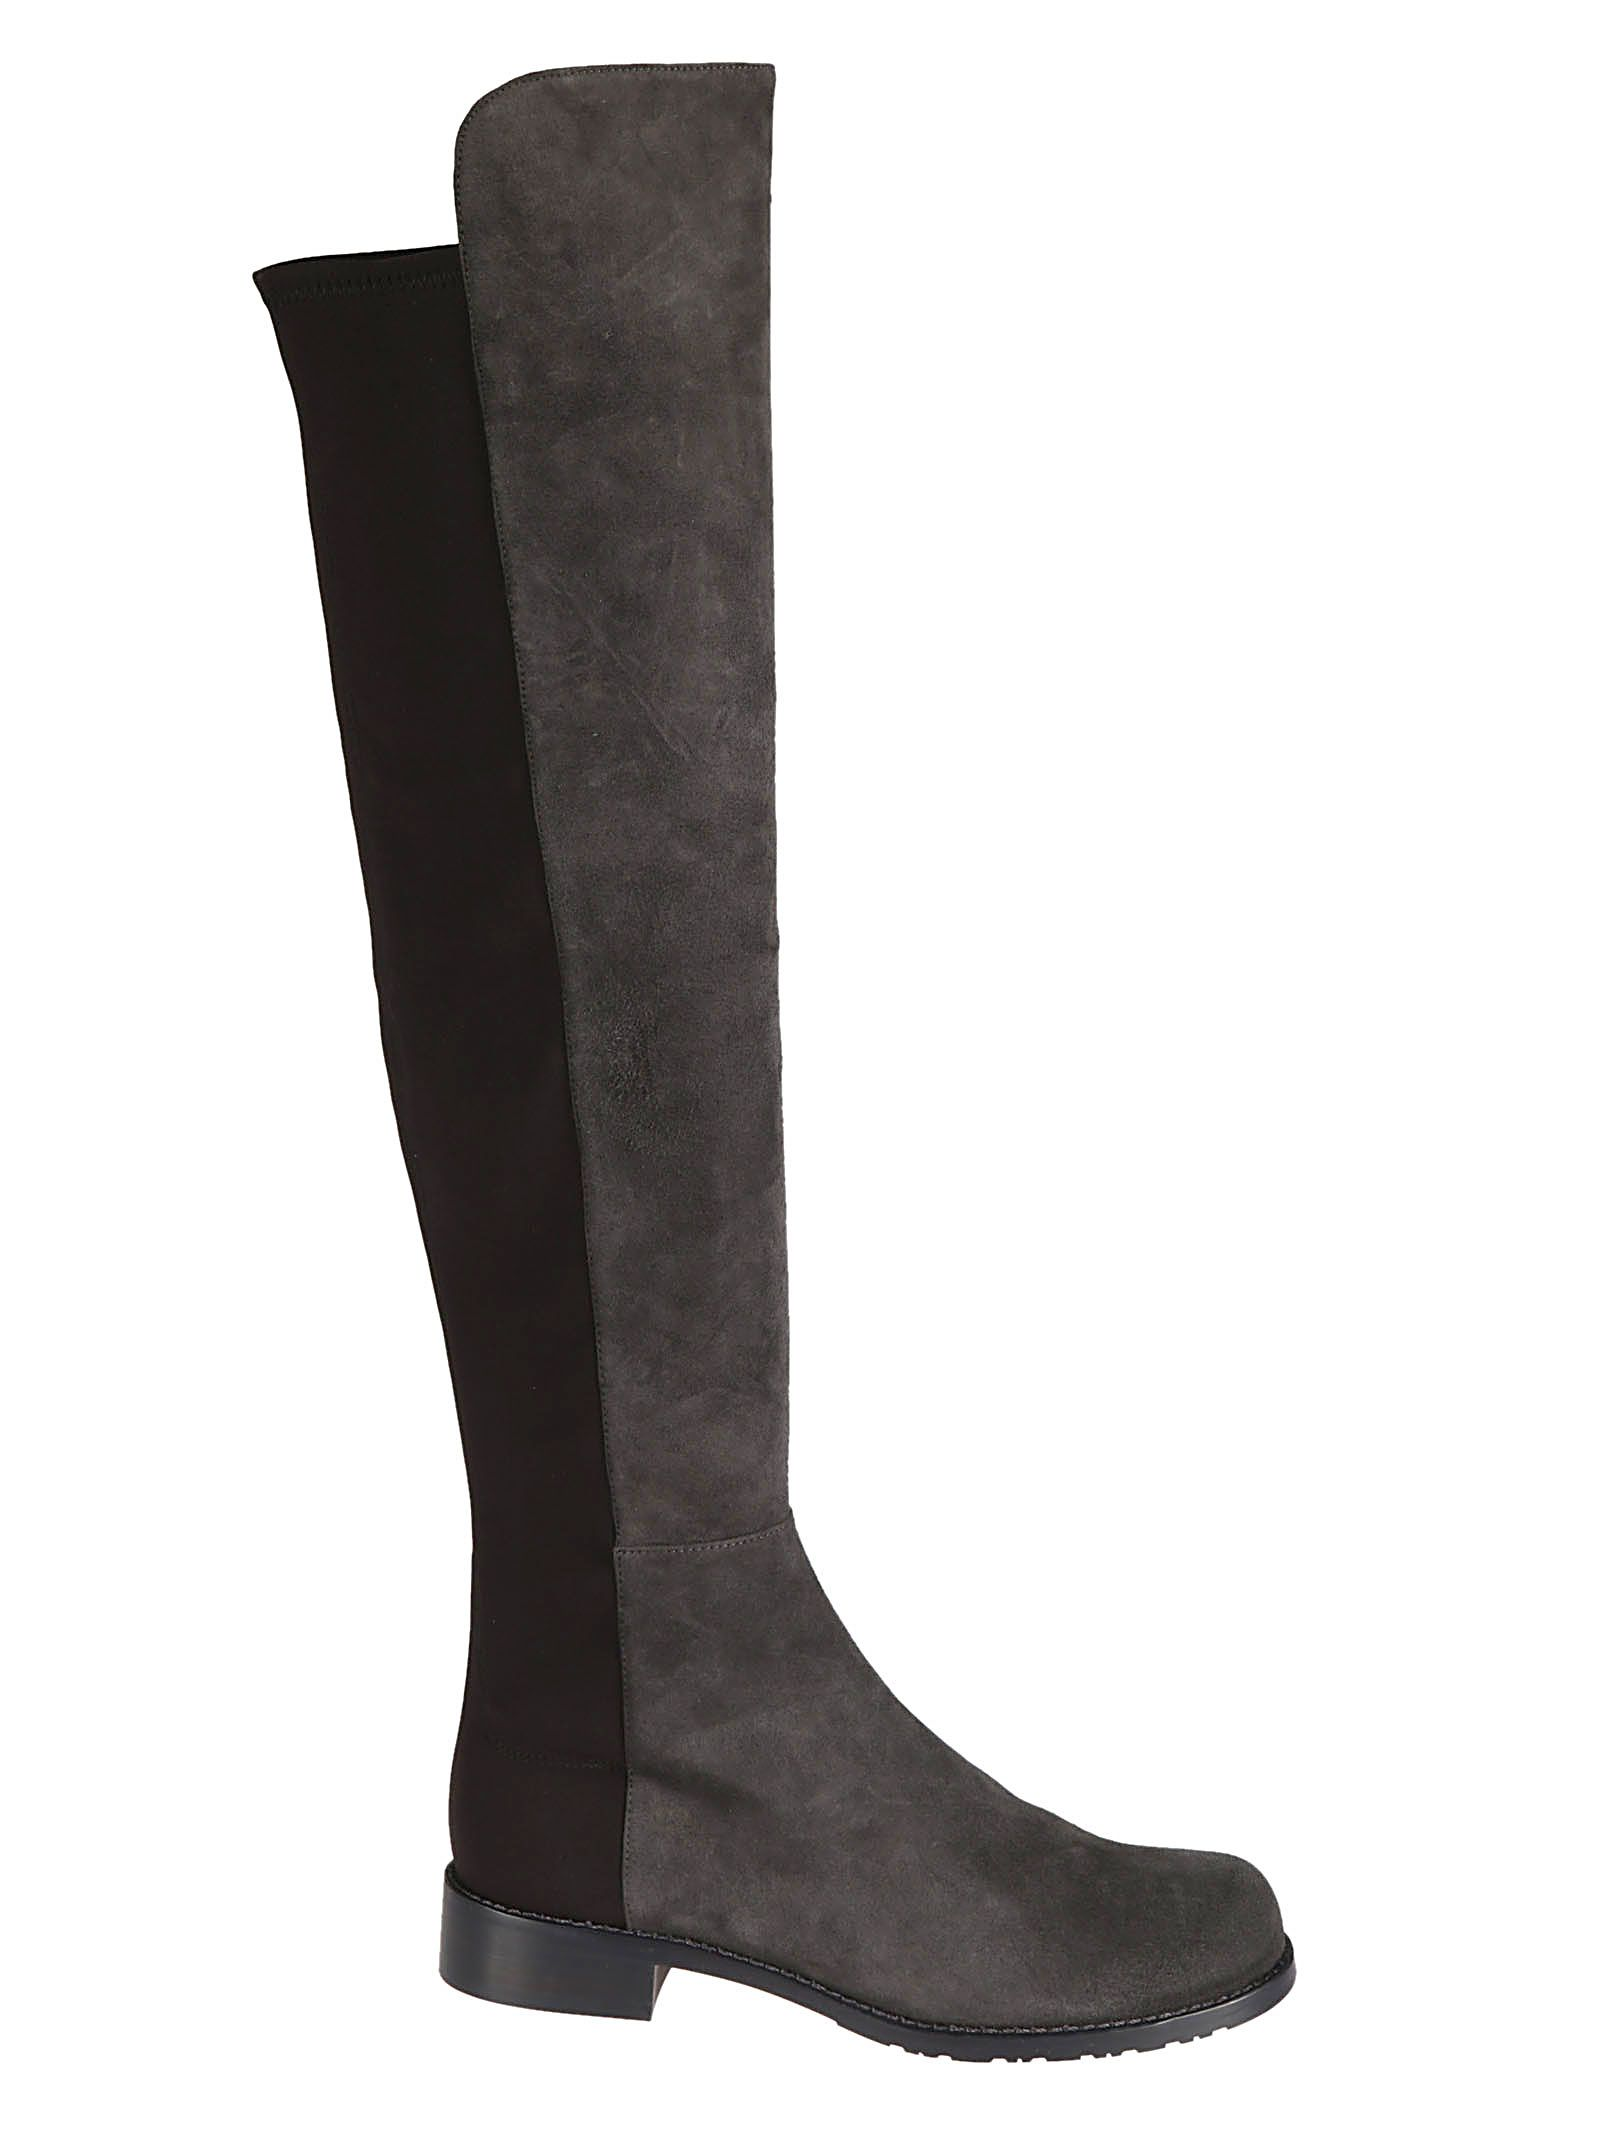 5050 Over-The-Knee Boots, Tarmac Black